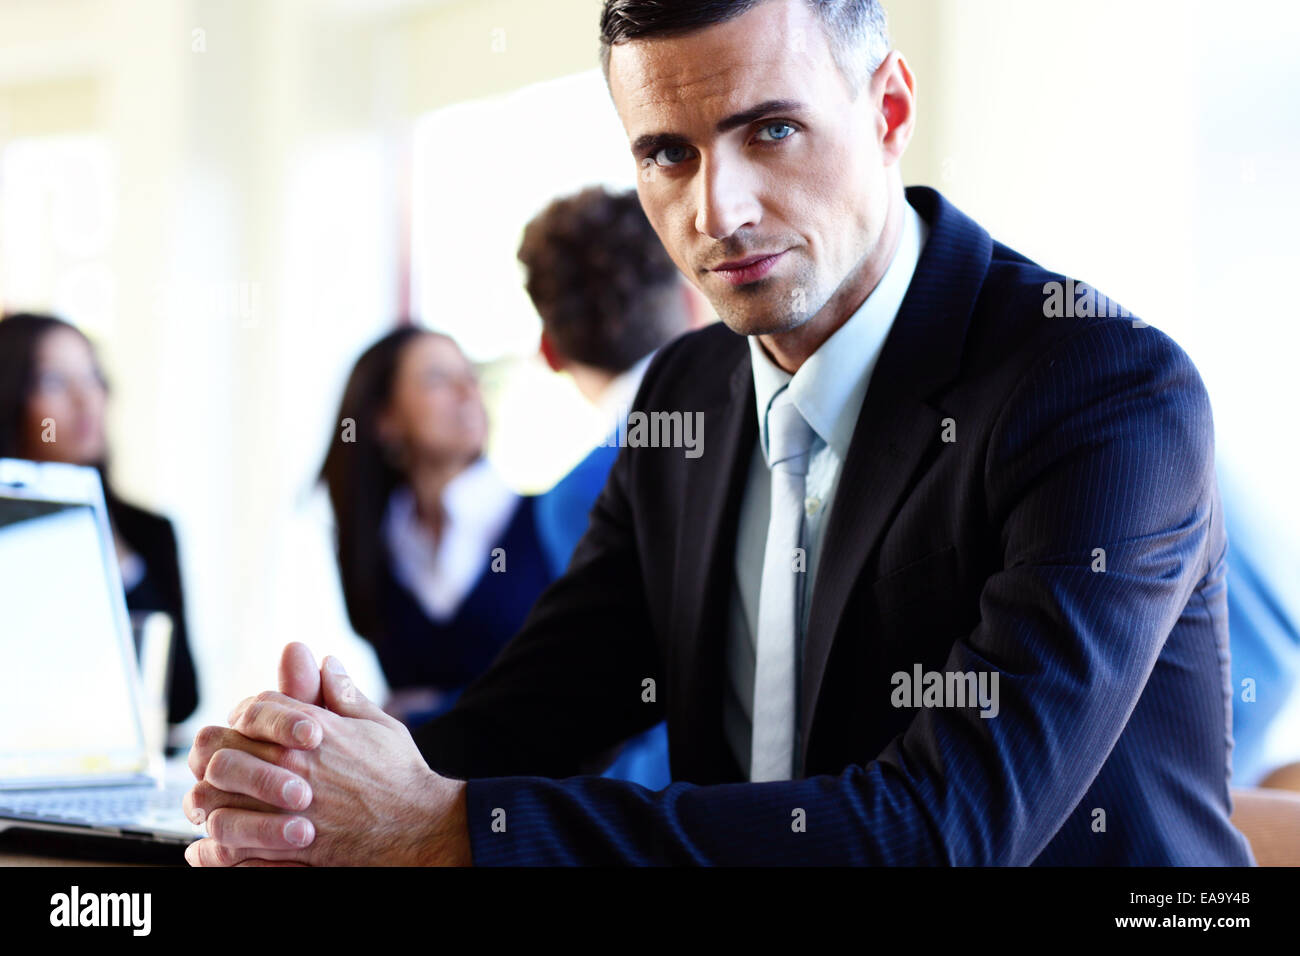 Serious businessman sitting at the table in front of colleagues - Stock Image